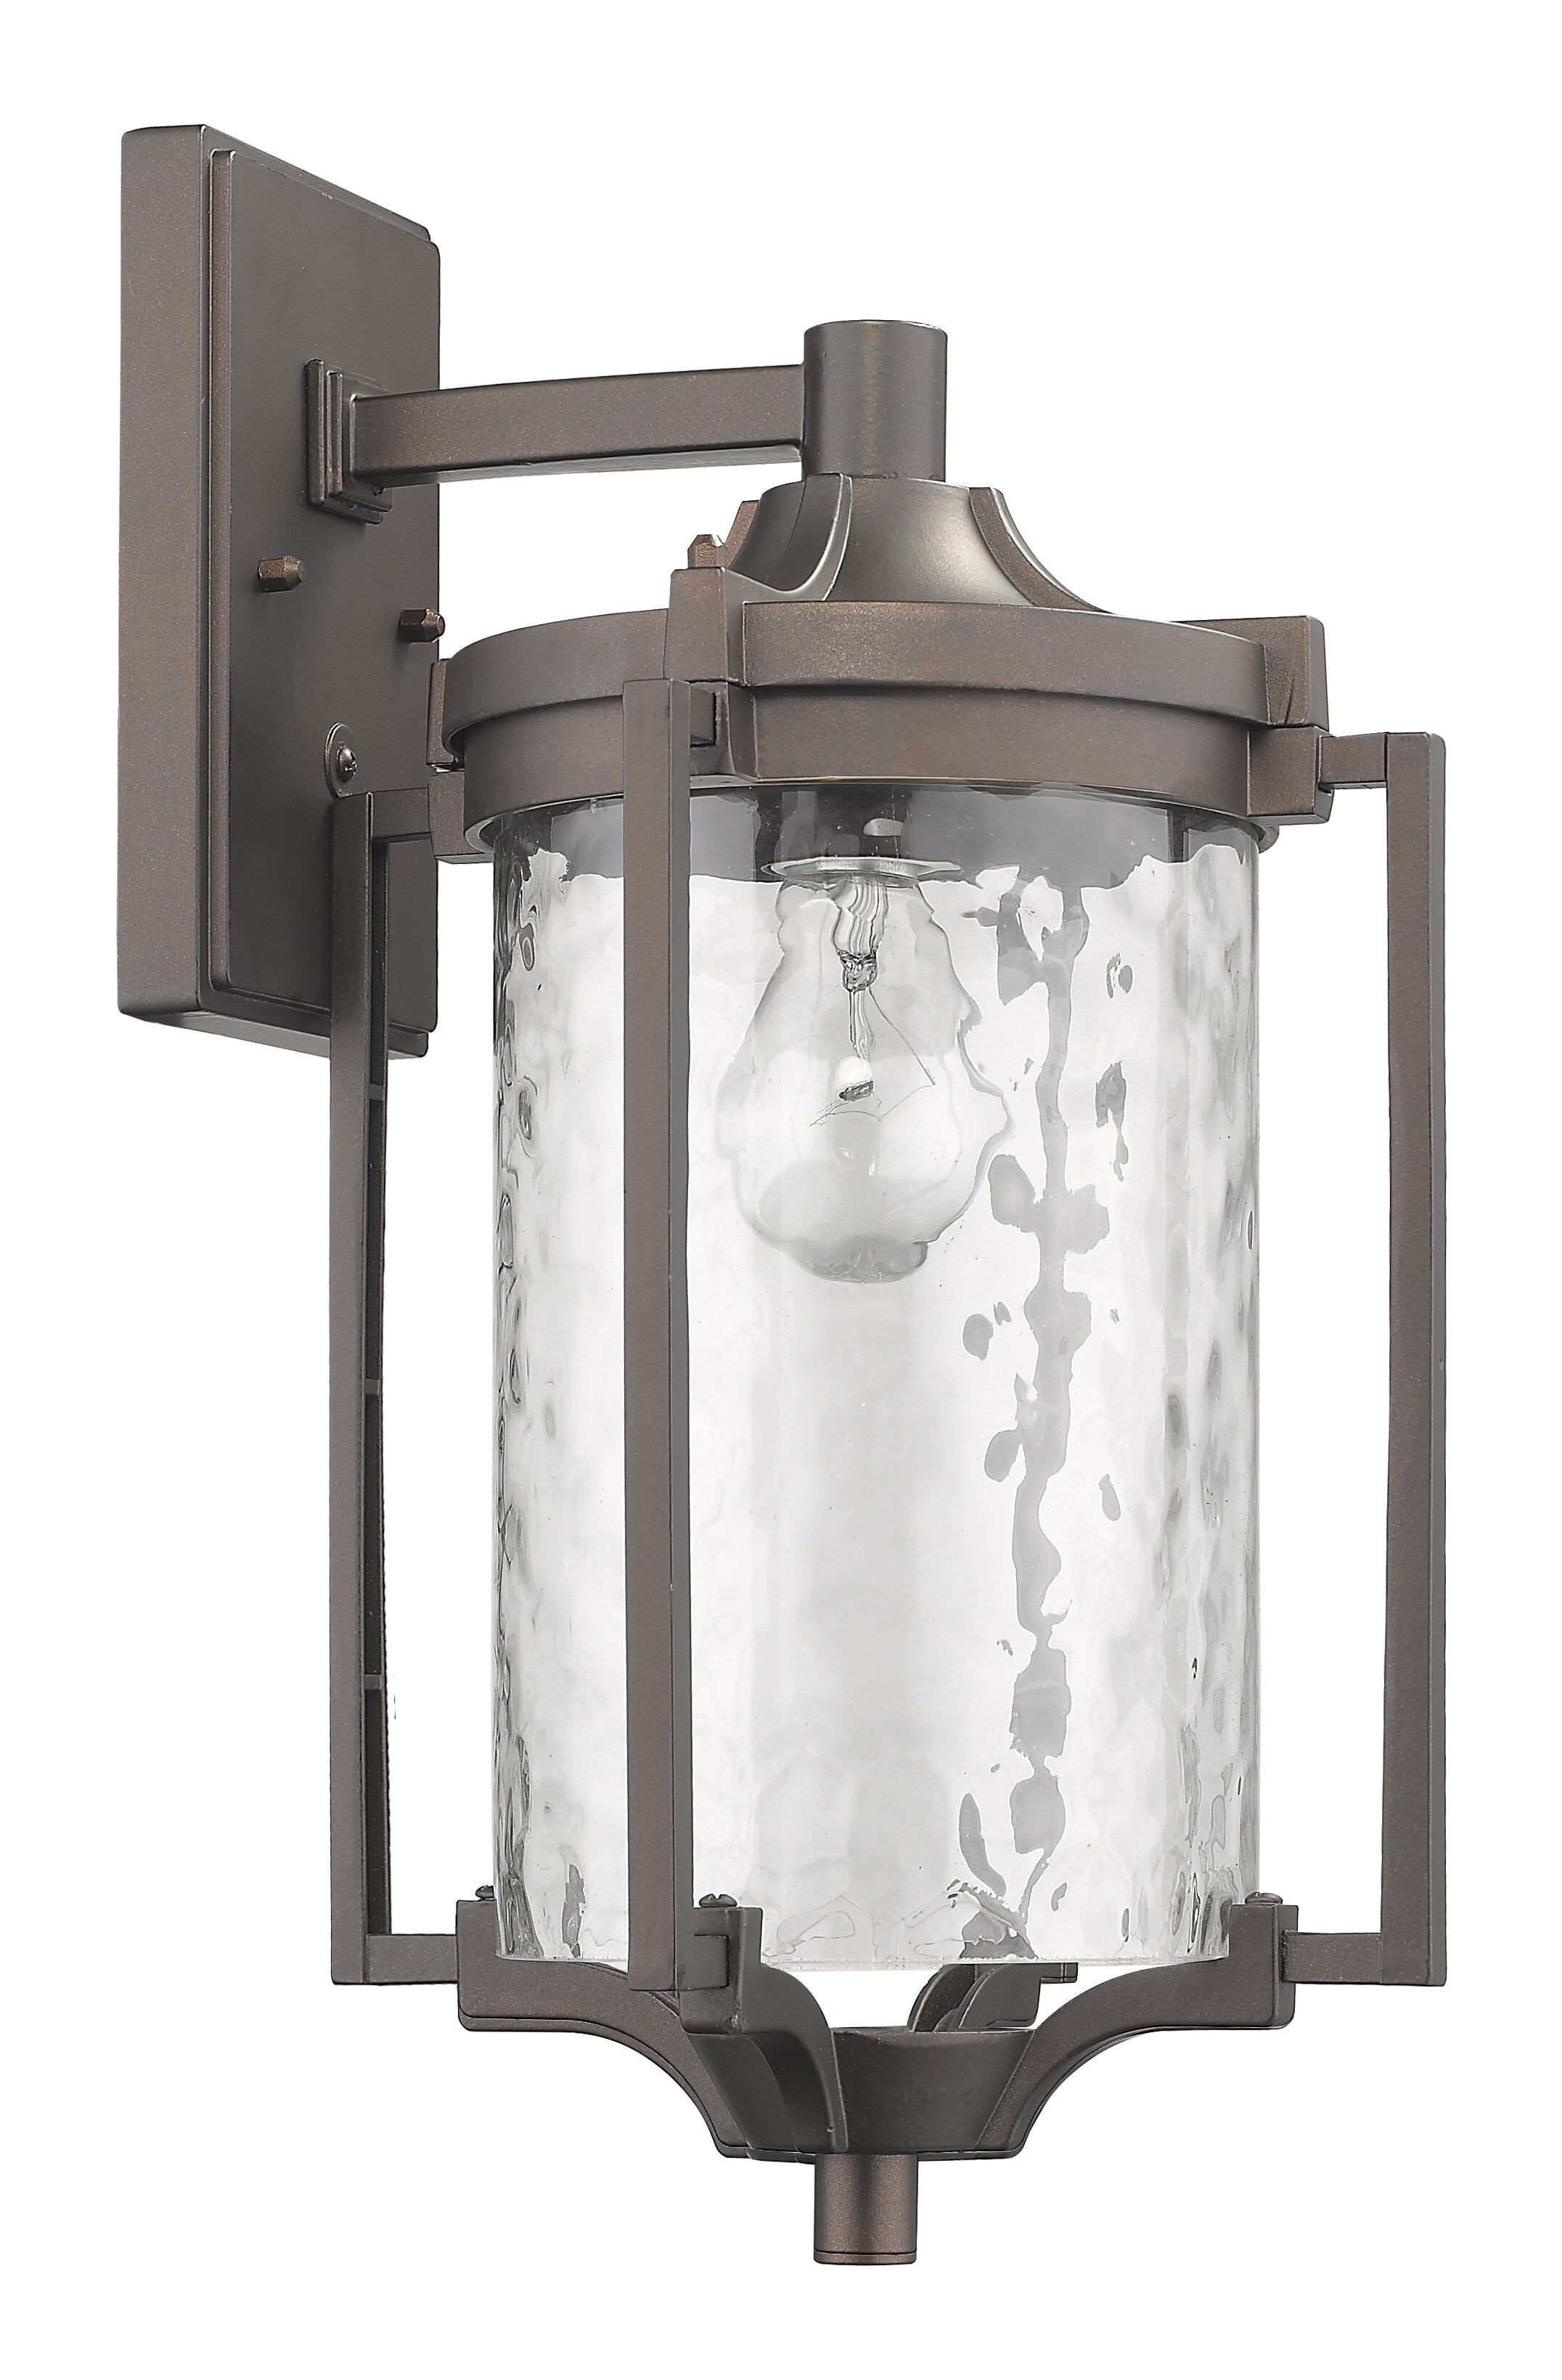 outdoor lantern with sconce wall exterior inspirations wikshire black parts solar perfect incredible pictures home images lighting charming decor lglm including motion top sensor also